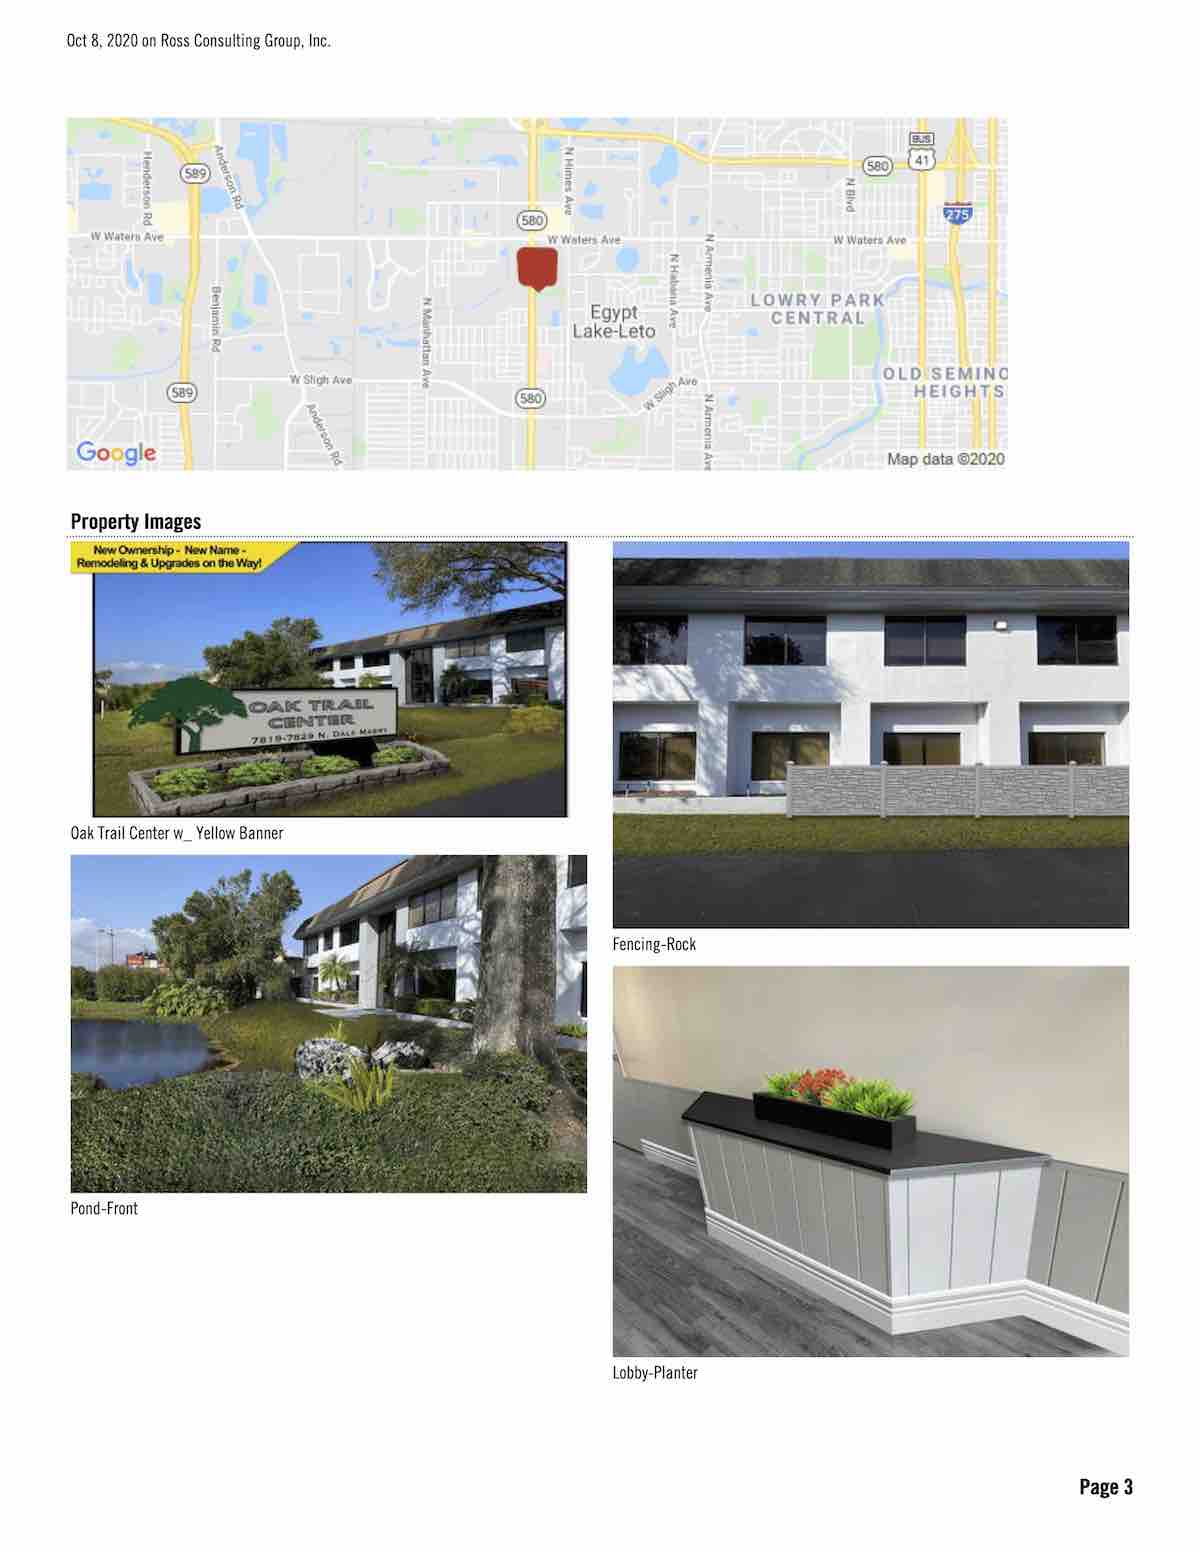 FOR LEASE - Oak Trail Center (Former Gulf South) - Oak Trail Center (Former Gulf South) - 7819-7829 N. Dale Mabry, Tampa, FL 33614 P3